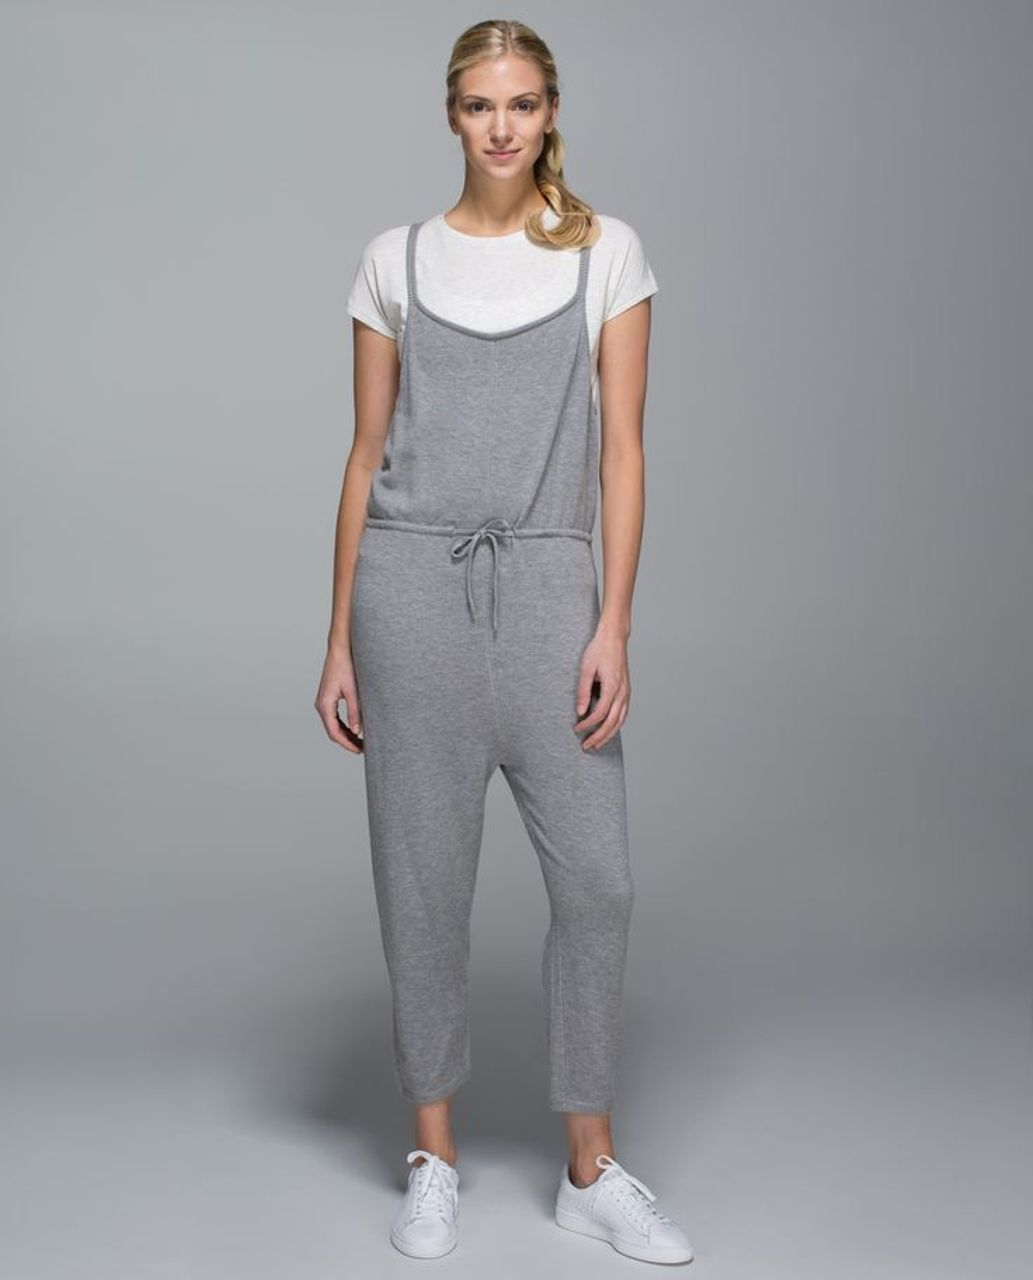 Lululemon Cabin Onesie - Heathered Medium Grey